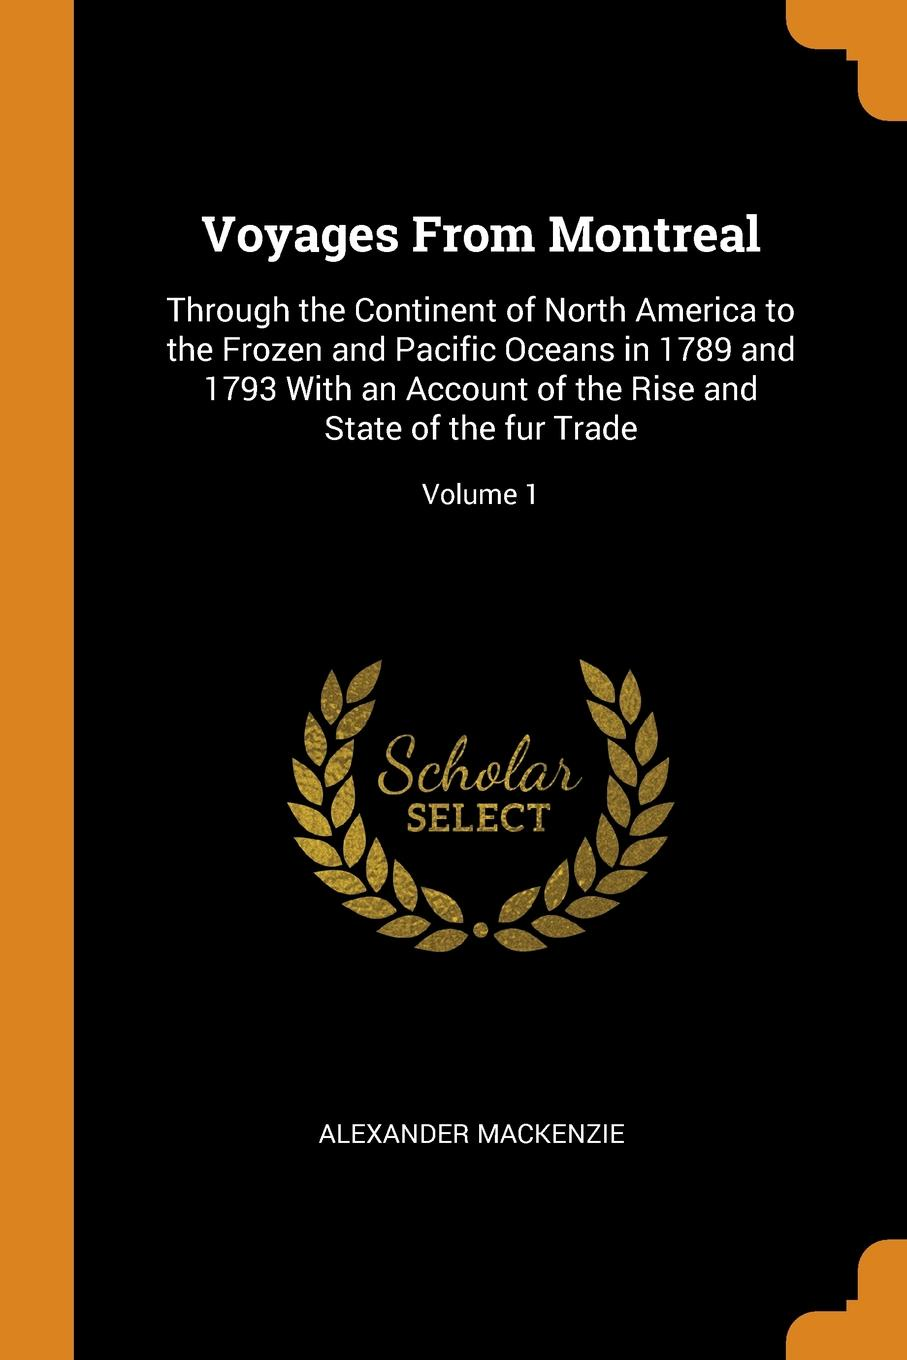 Alexander Mackenzie Voyages From Montreal. Through the Continent of North America to the Frozen and Pacific Oceans in 1789 and 1793 With an Account of the Rise and State of the fur Trade; Volume 1 alexander mackenzie voyages from montreal through the continent of north america to the frozen and pacific oceans in 1789 and 1793